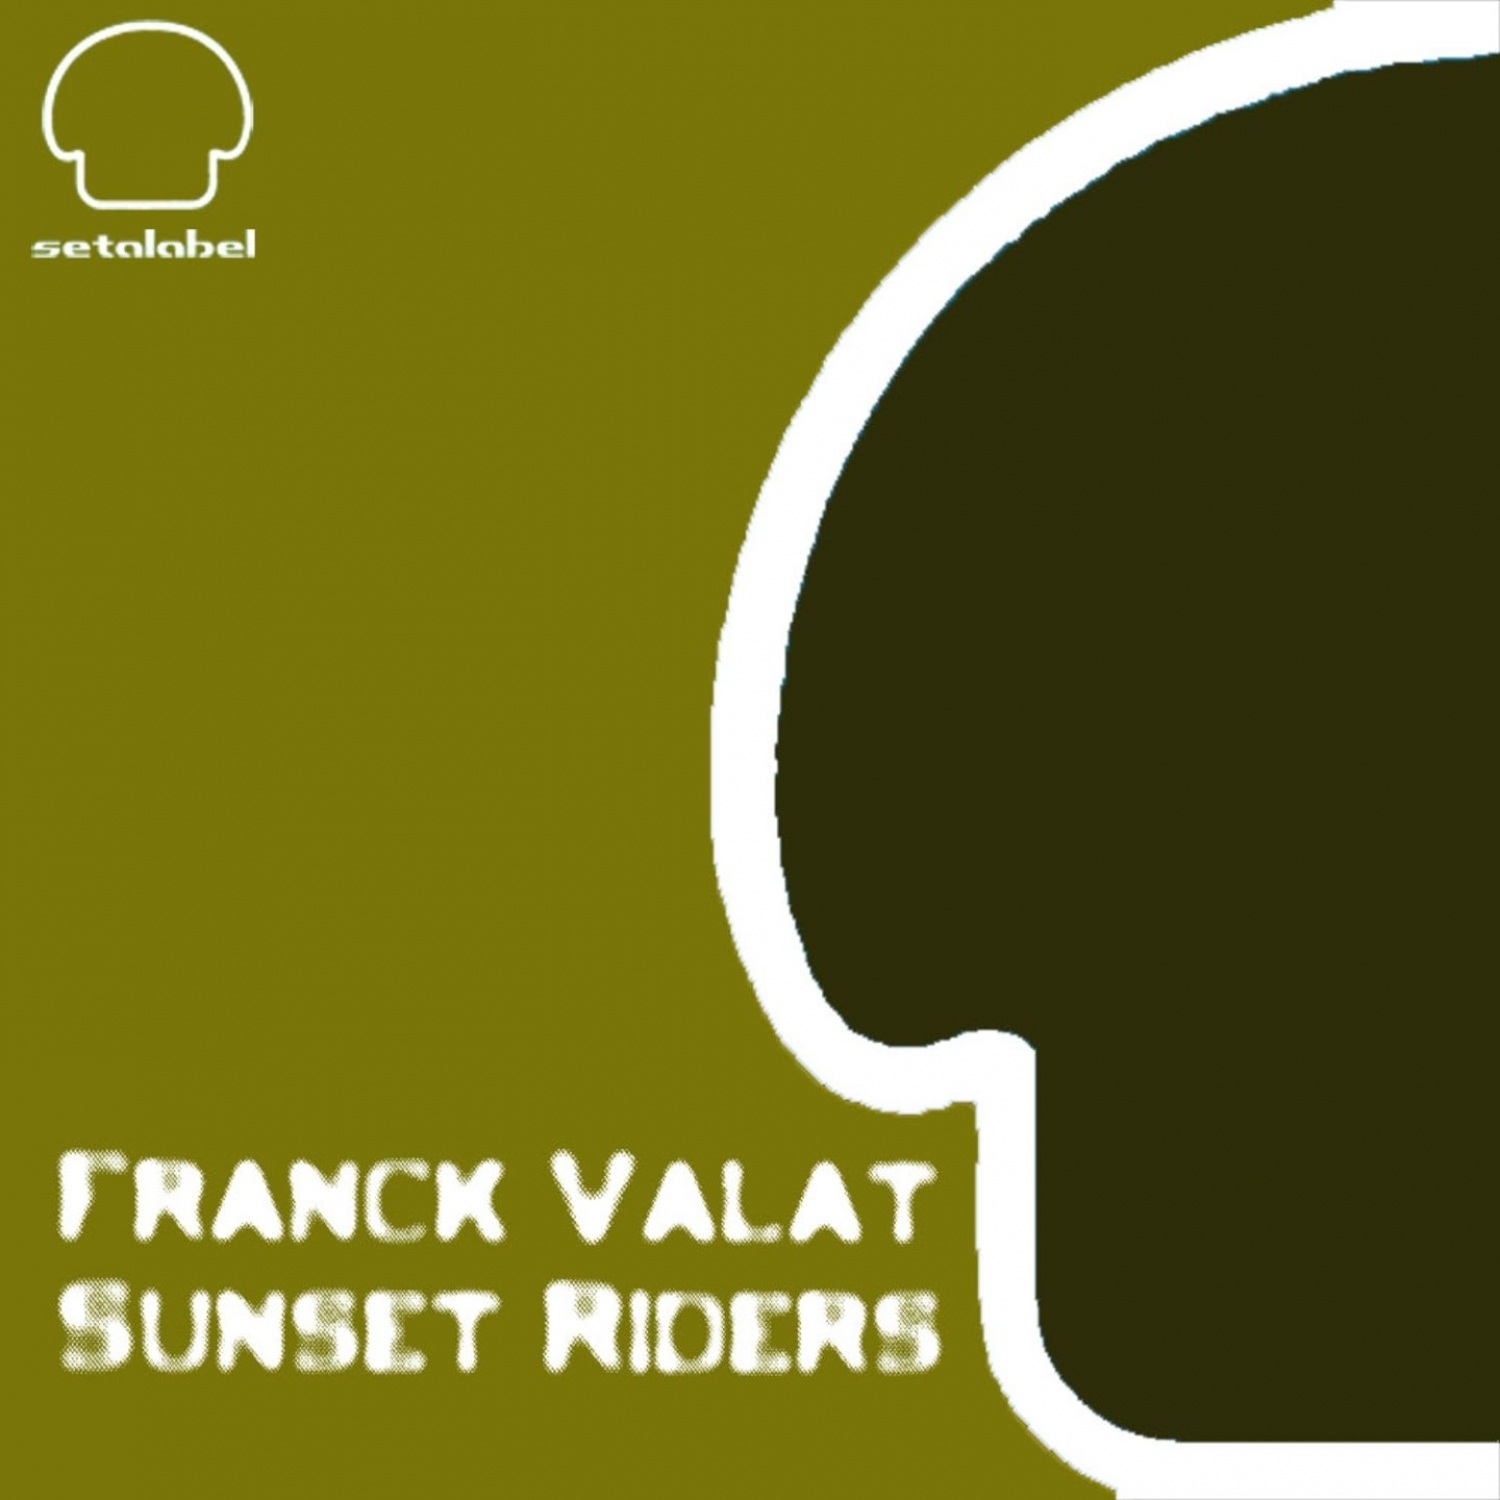 Franck Valat - Sunset Riders (Original Mix)